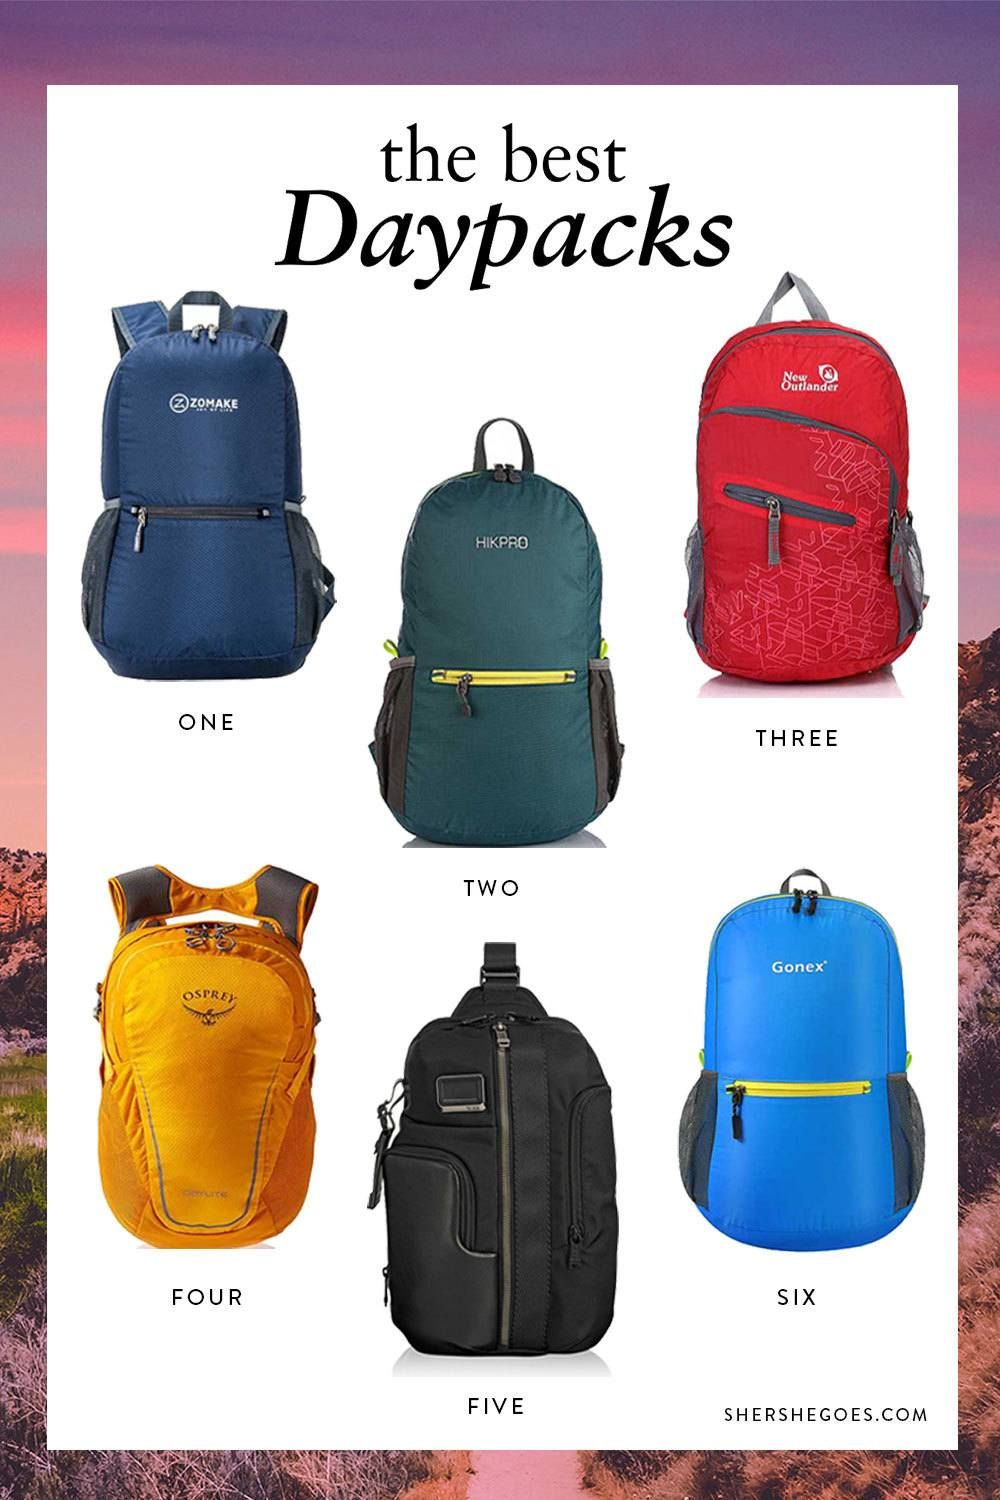 The best six backpacks for your next trip!